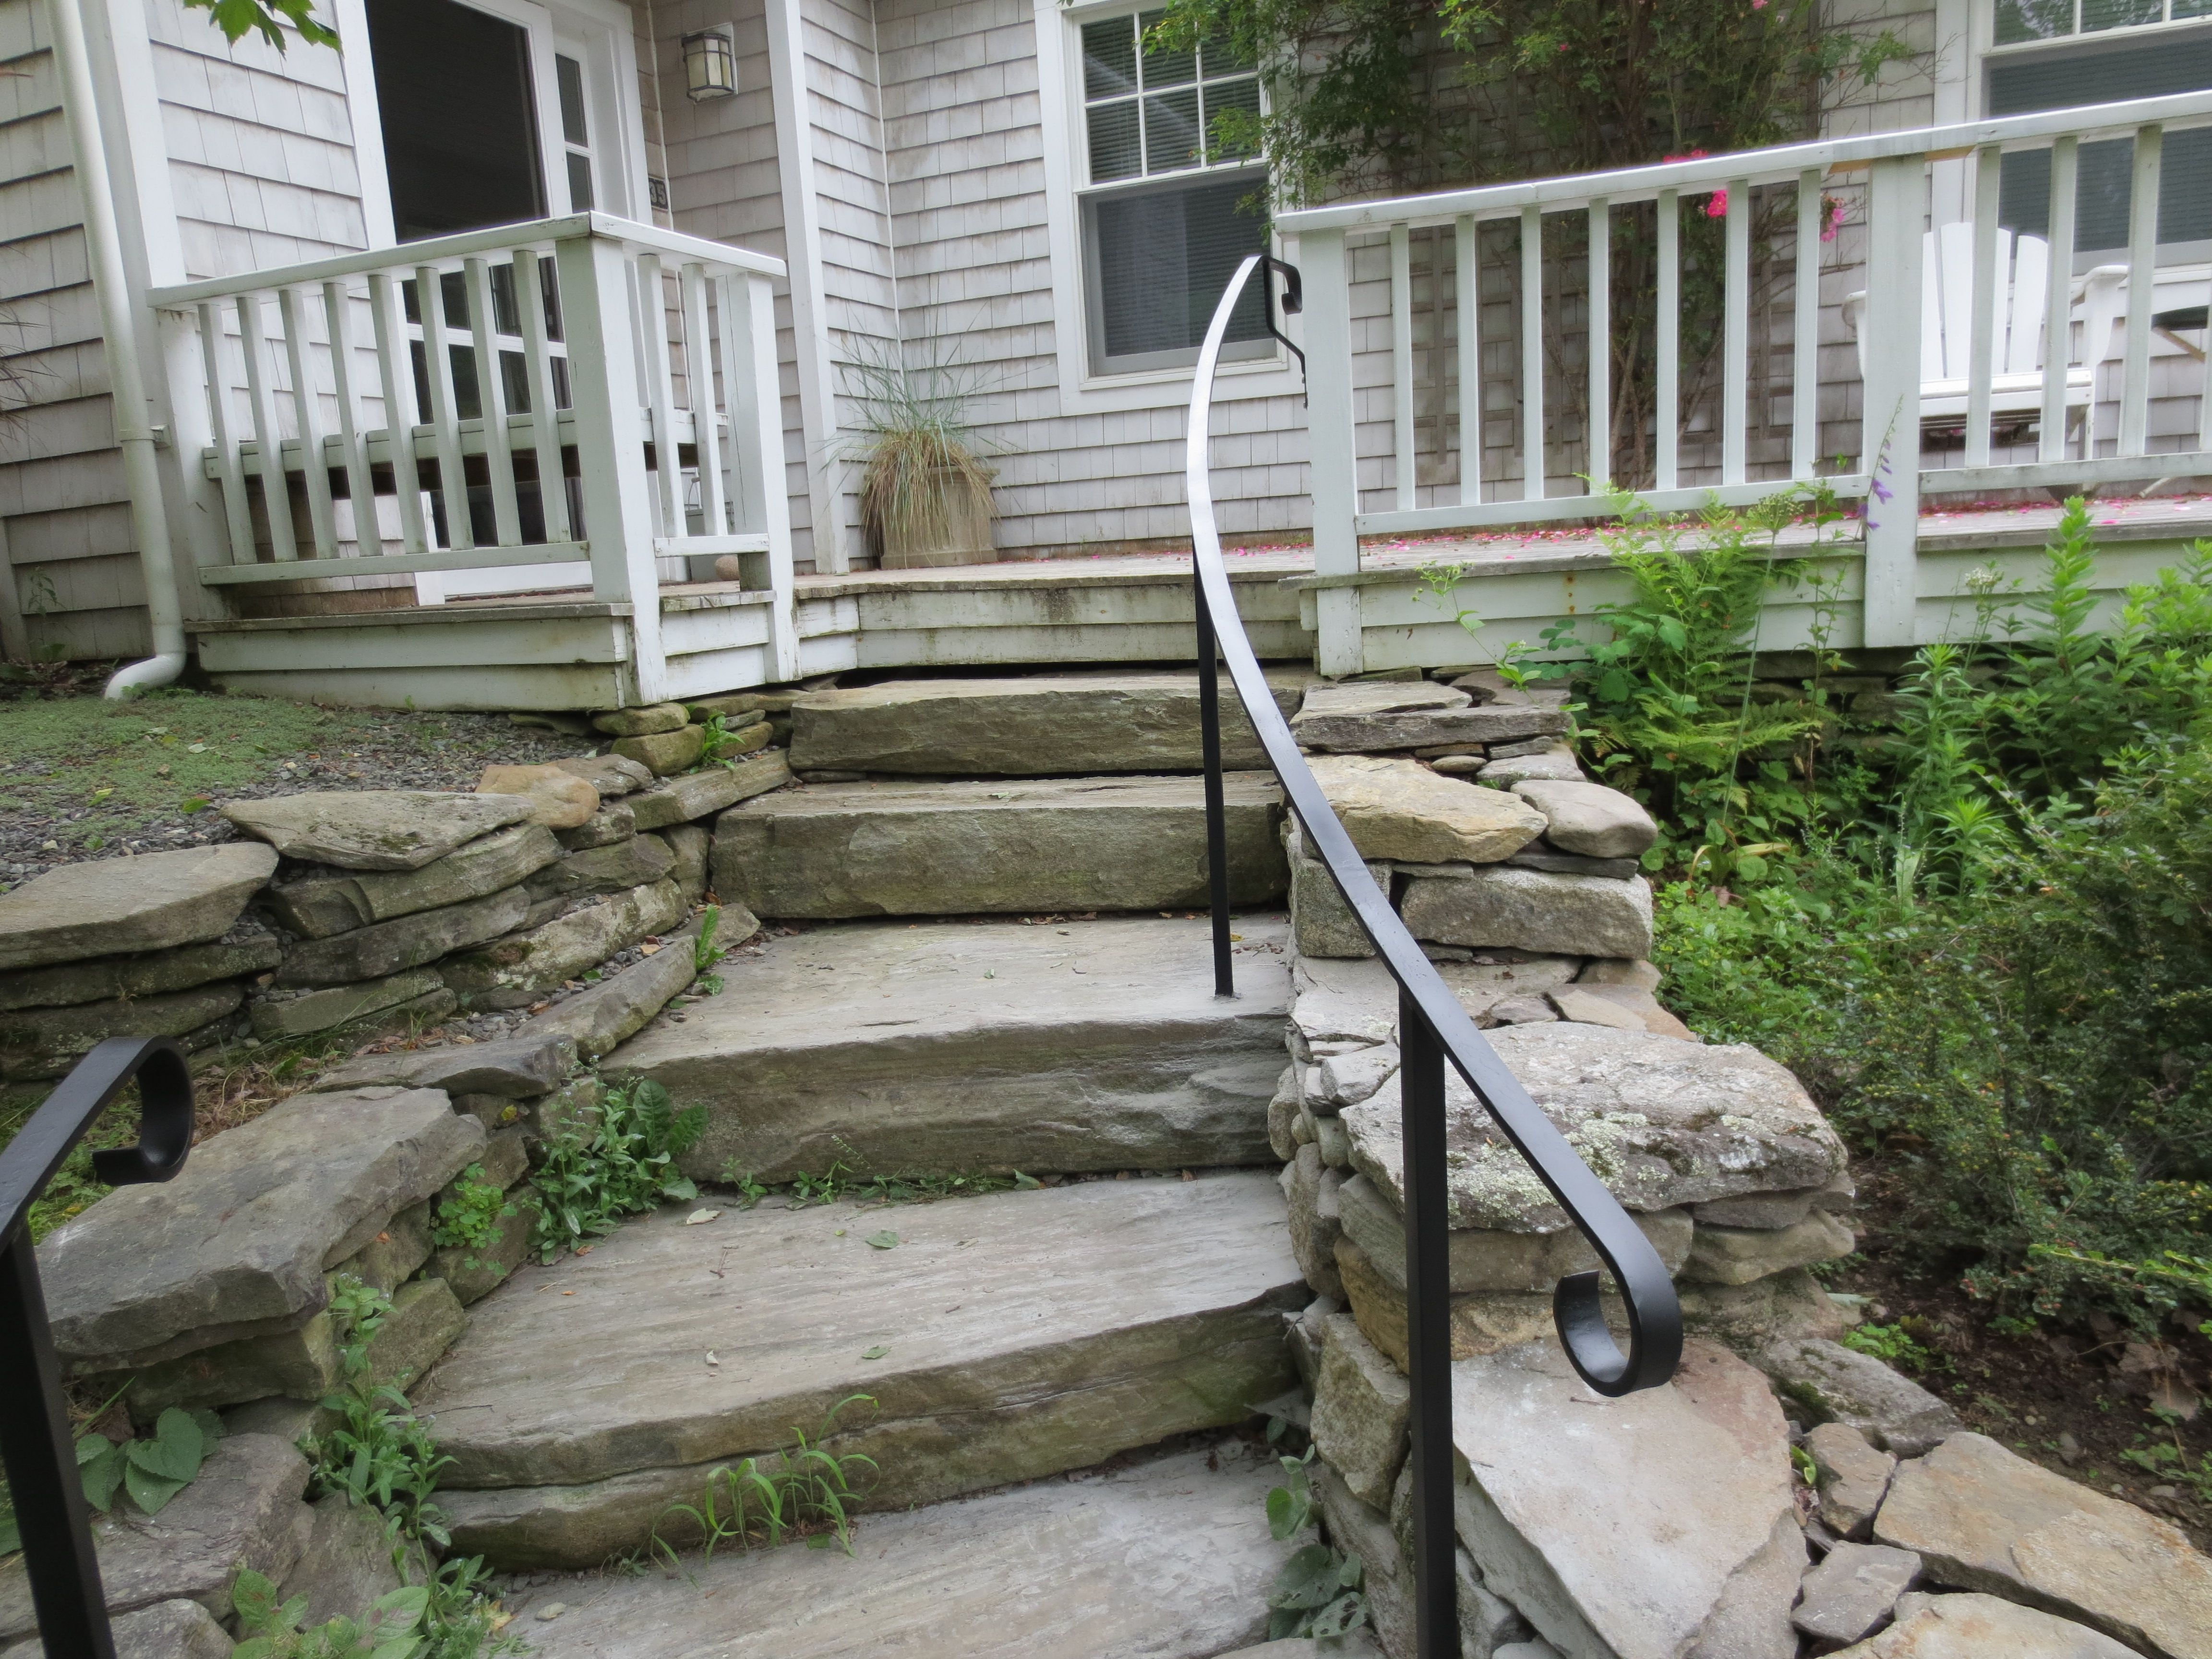 Wrought Iron Railing On Natural Stone Steps Outdoor | Iron Railings For Steps